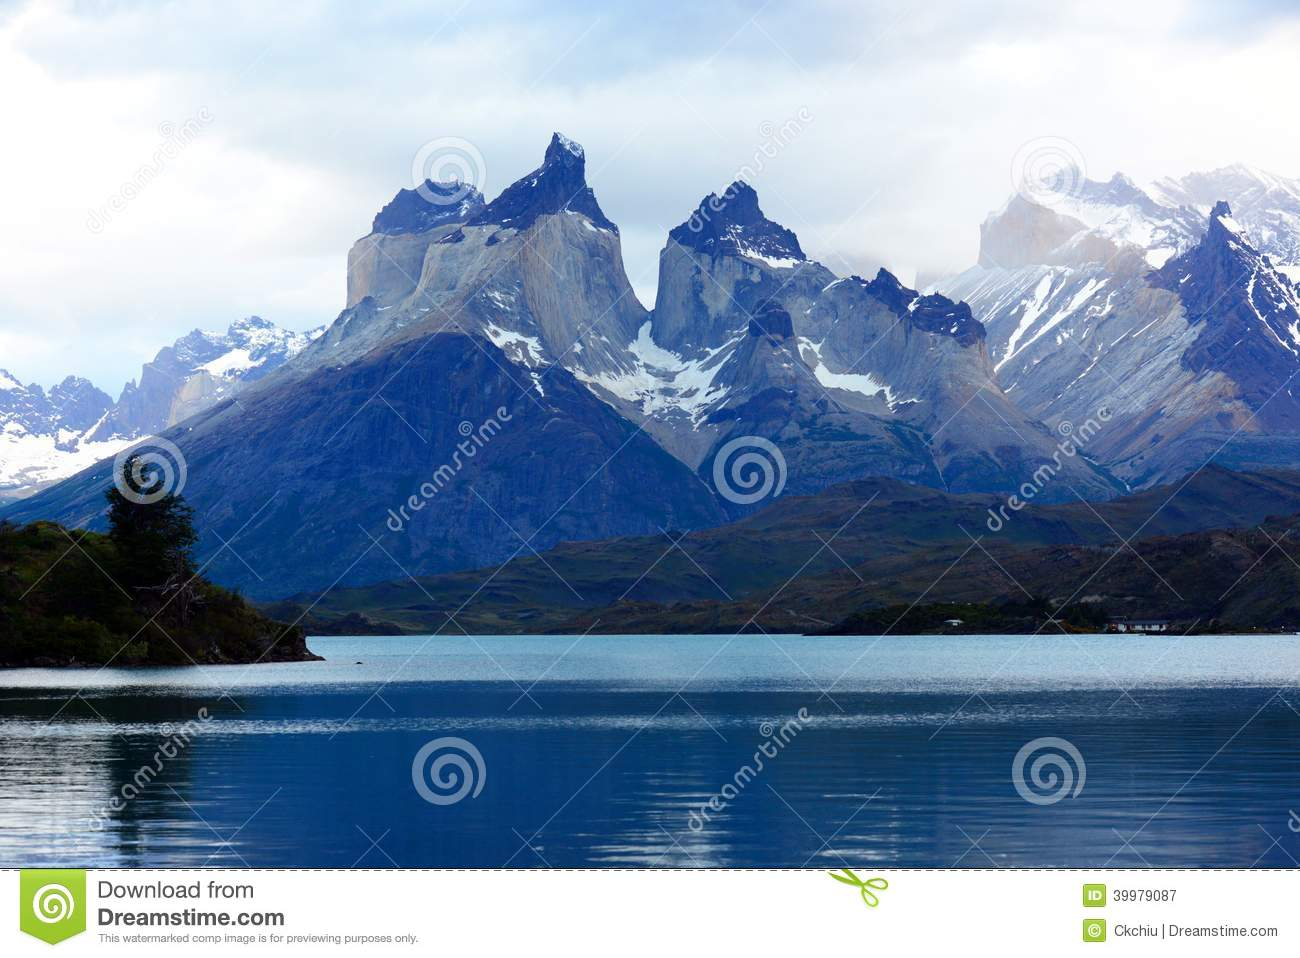 Torres del Paine nationalpark, Patagonia, Chile